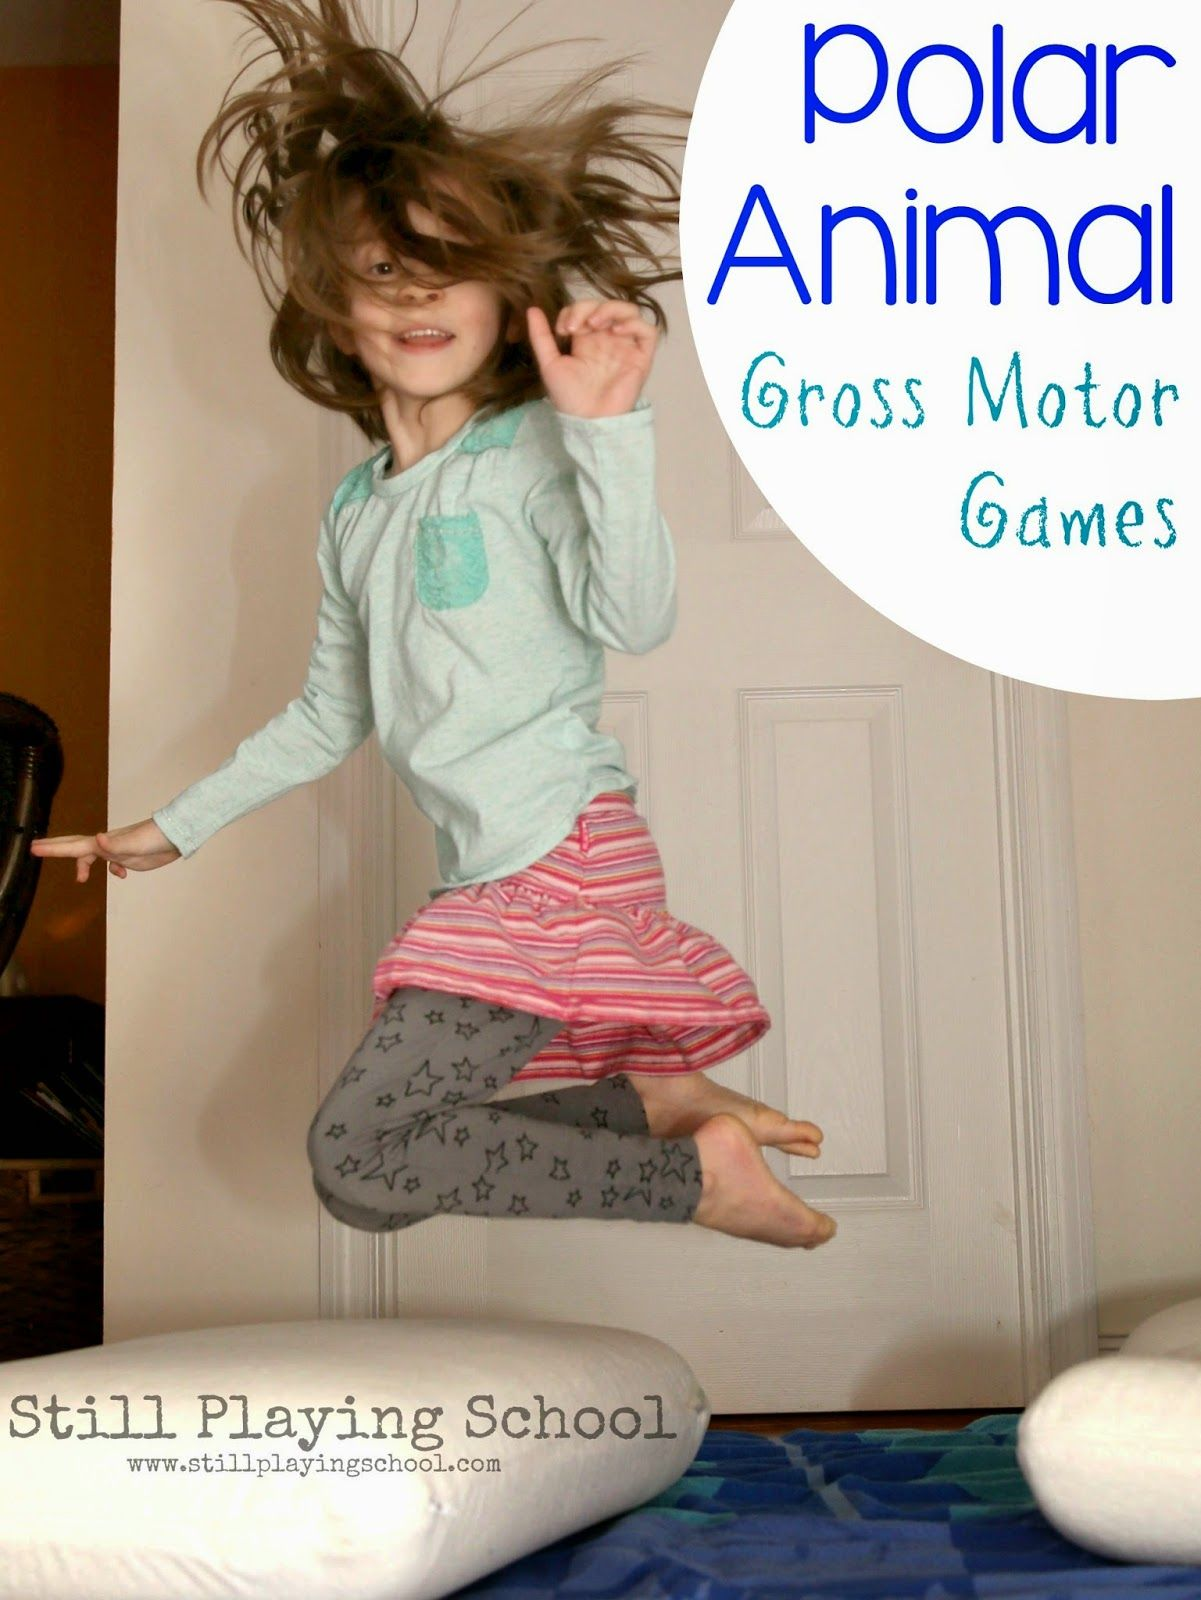 Polar Animal Gross Motor Games